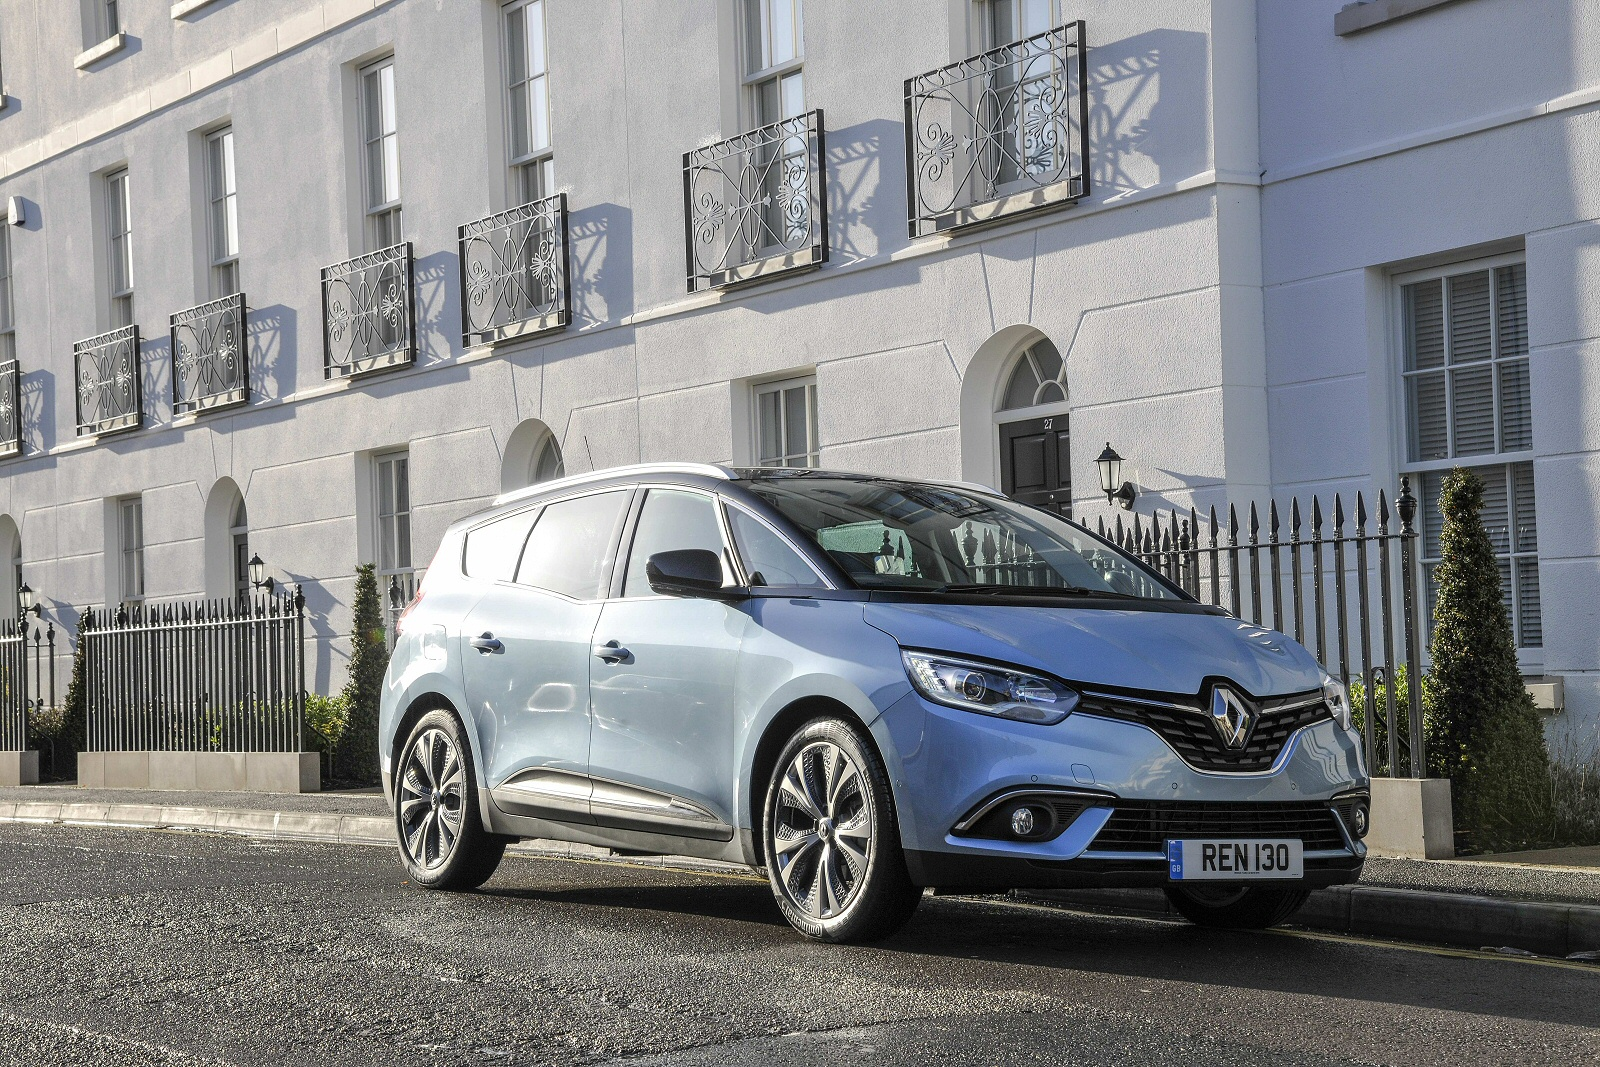 new renault grand scenic 1 5 dci hybrid assist signature nav 5dr diesel electric hybrid estate. Black Bedroom Furniture Sets. Home Design Ideas